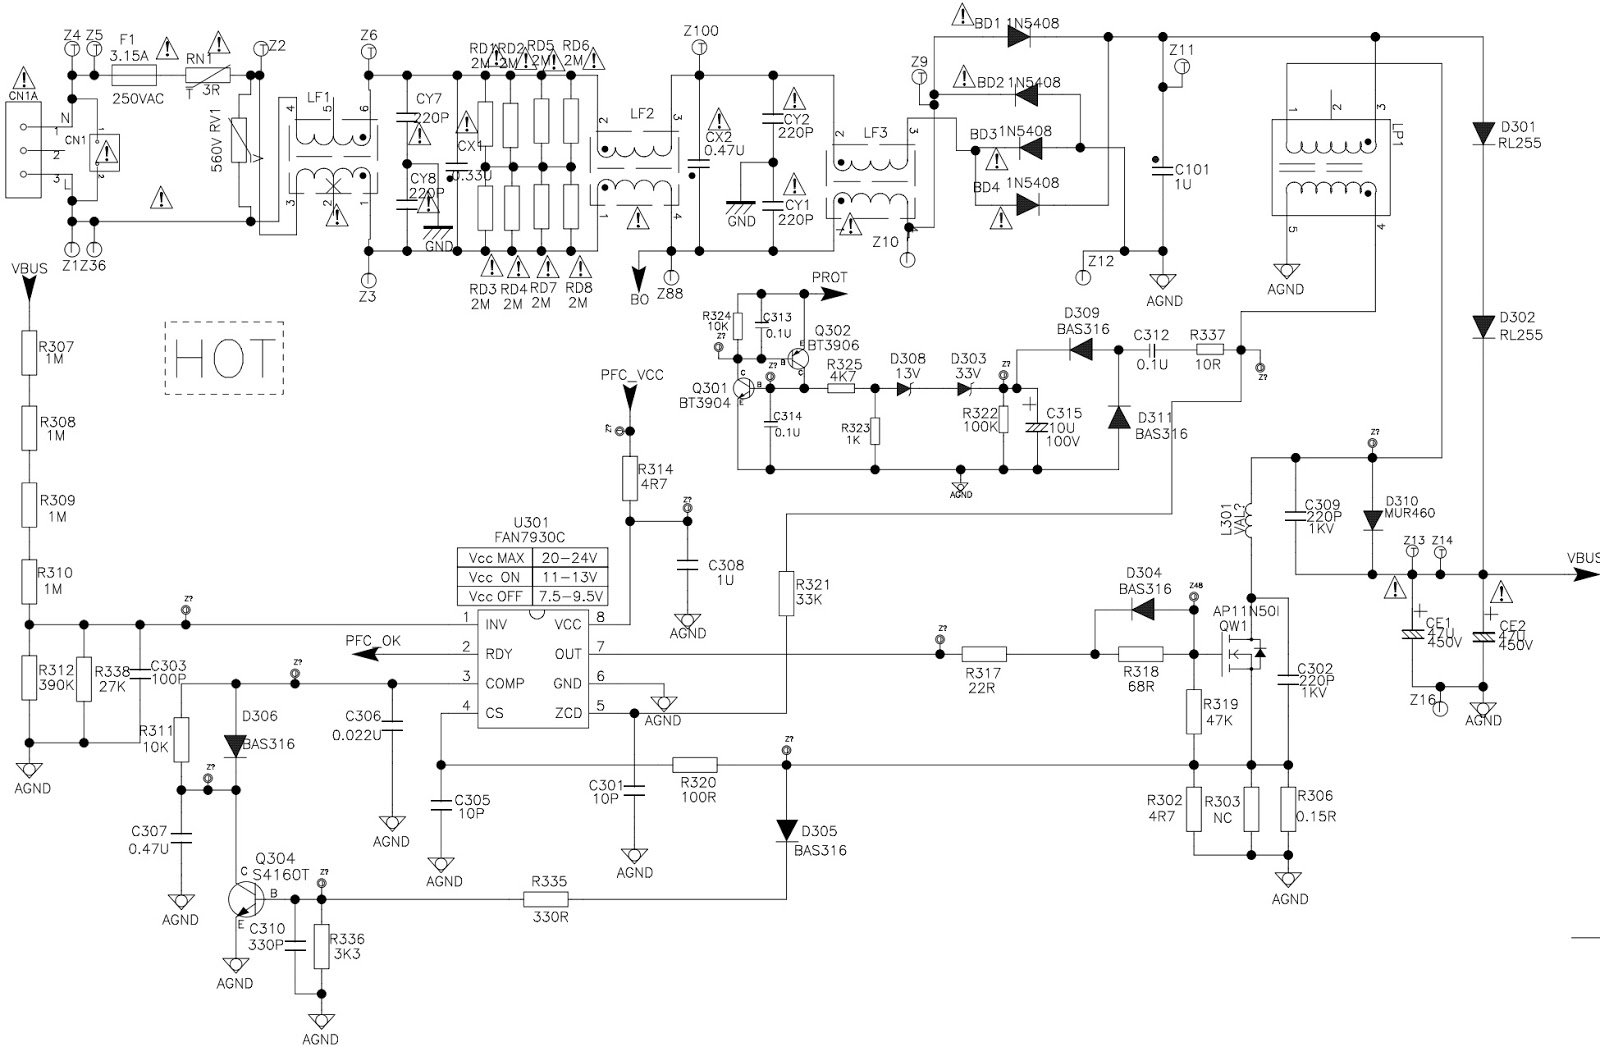 tcl les9b21 lcd tv power supply regulator schematic electrotricks figure 2 block diagram of an lcd tv power supply [ 1600 x 1047 Pixel ]